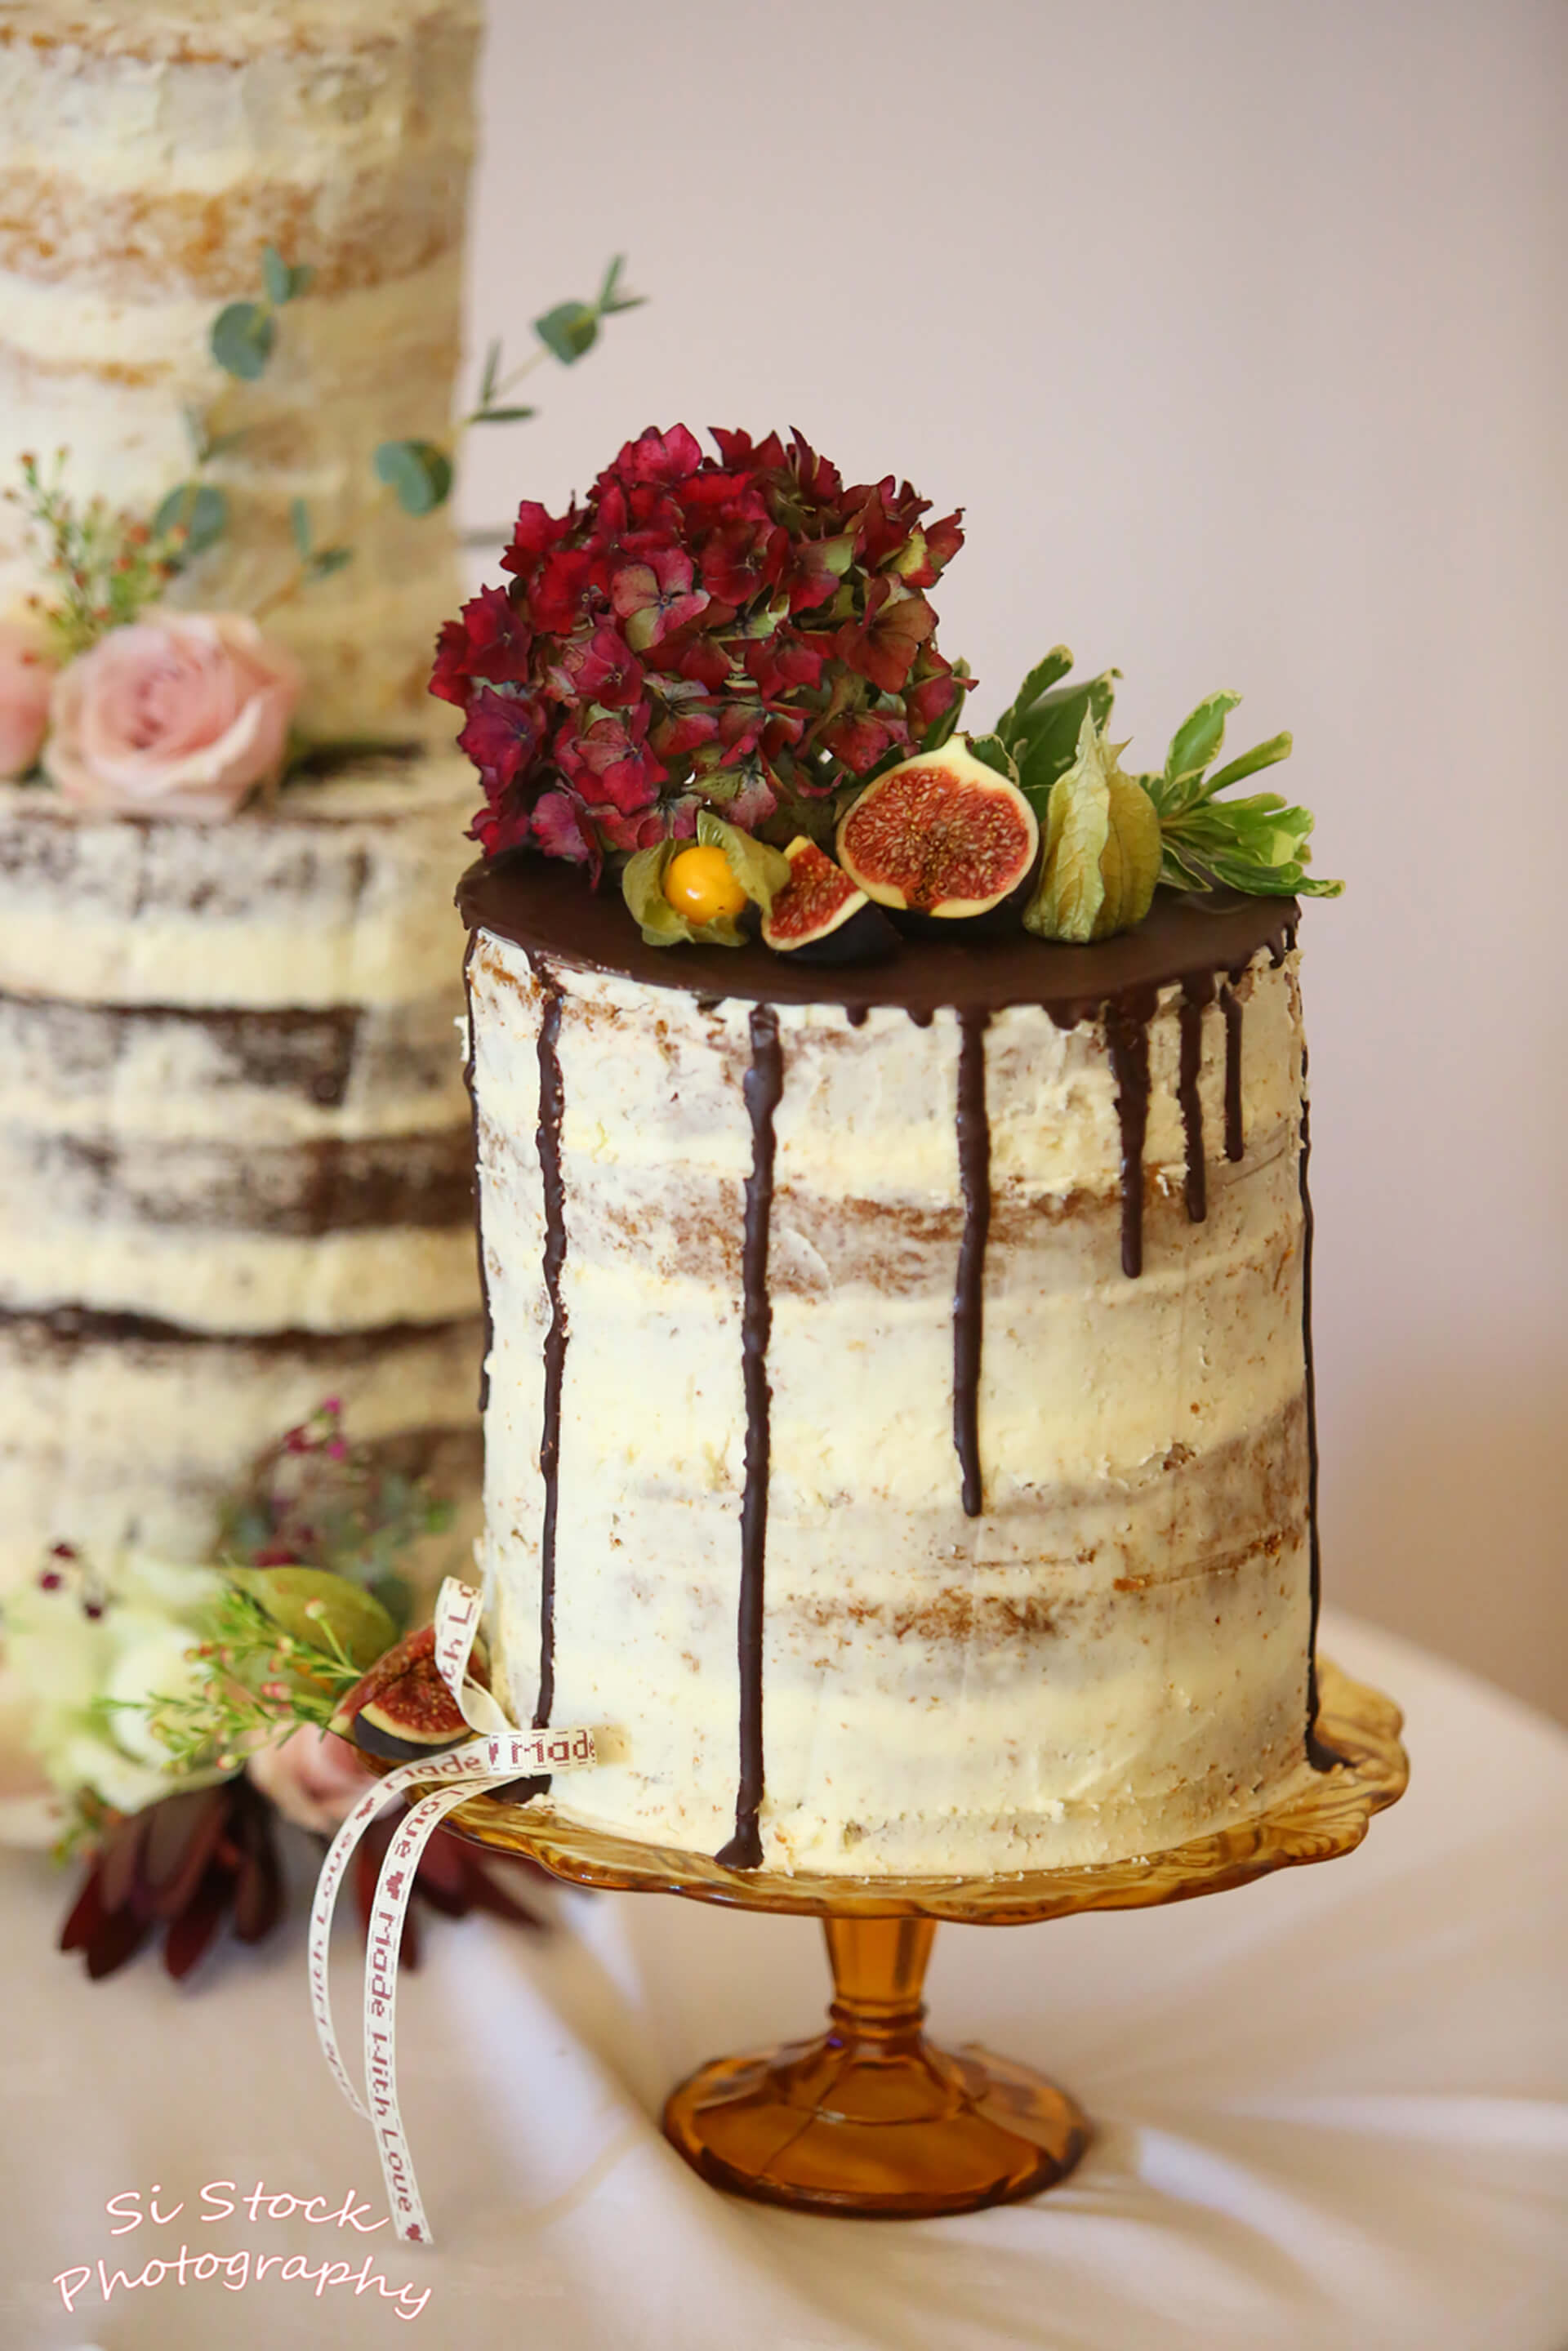 What a showstopper! Rosie and David's wedding cake captured by Simon Stock.